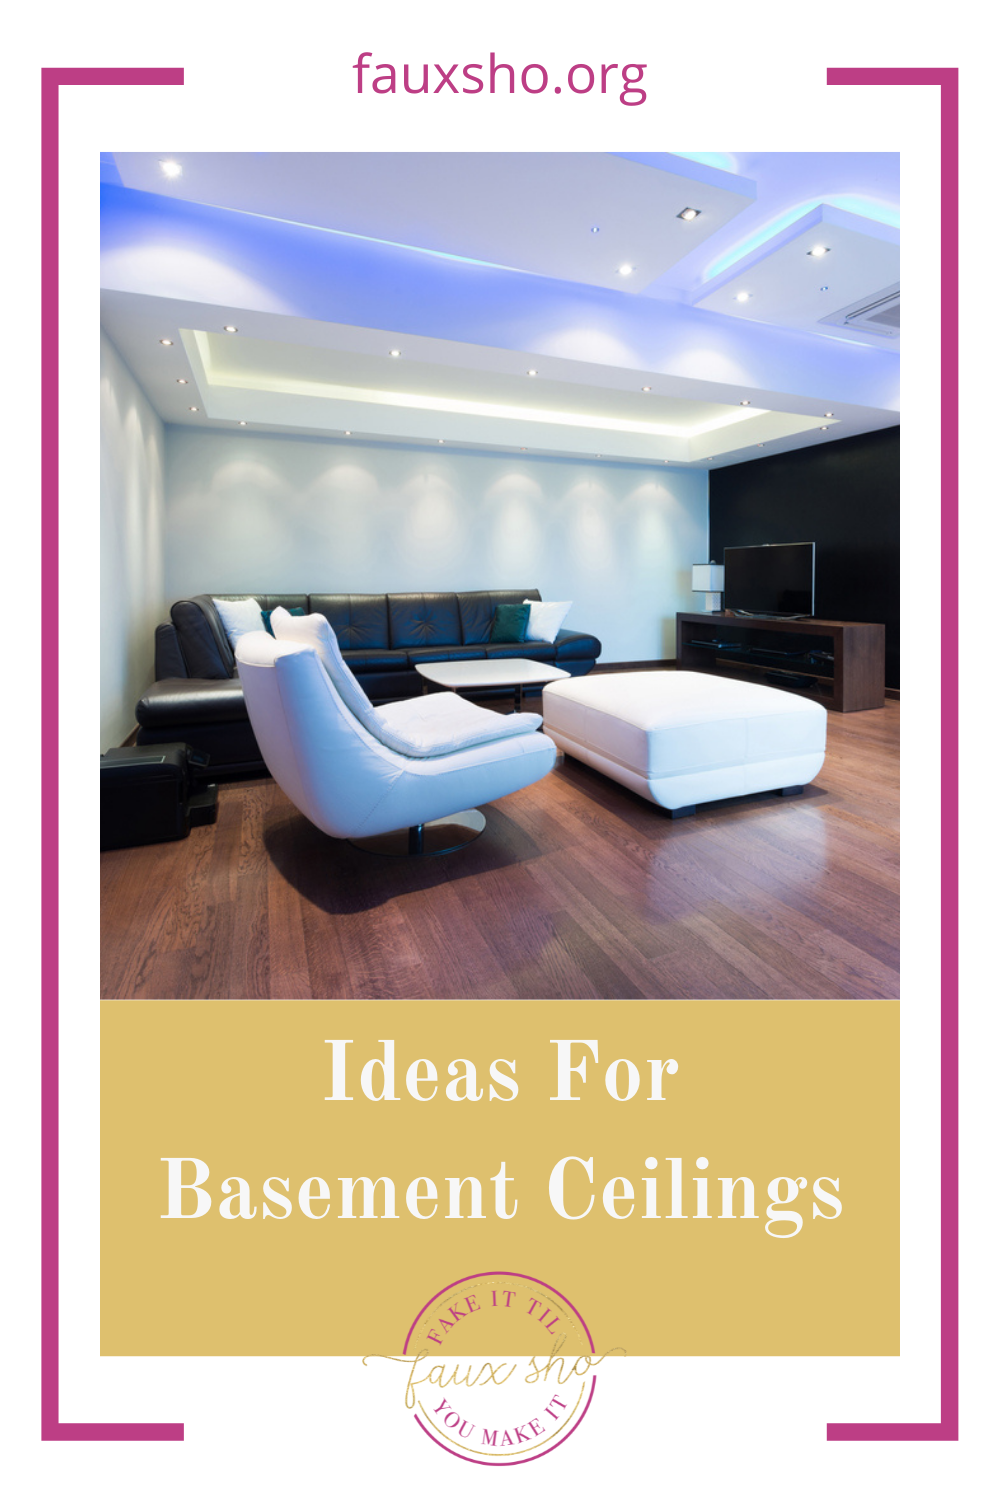 Fauxsho.org has the best ideas to help you fake it 'til you make it! Get the luxury of a deep bathtub in your home. Try these ideas for making your basement ceiling feel higher!